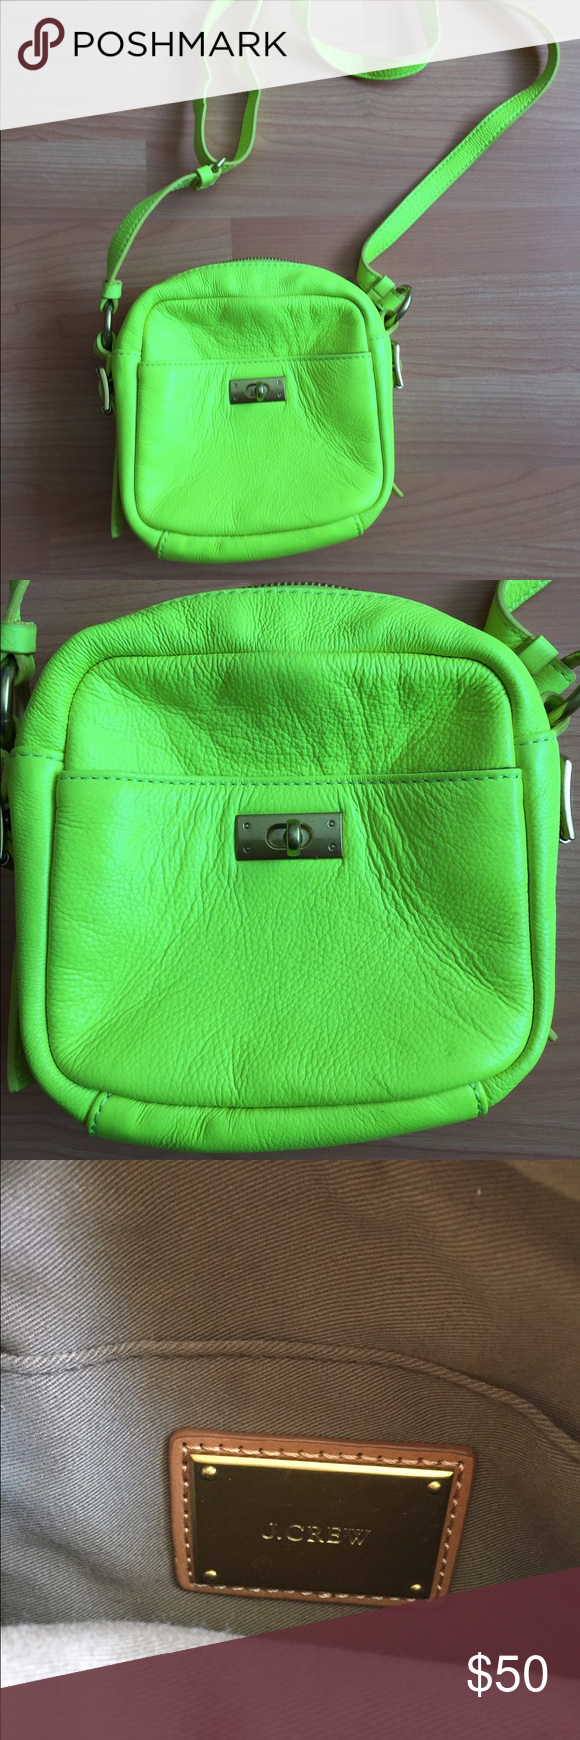 J. Crew Neon Green shoulder bag Excellent condition neon green/yellow shoulder bag. Only worn a few times. Inside lining is in perfect condition. One small black mark on backside of bag. J. Crew Bags Shoulder Bags